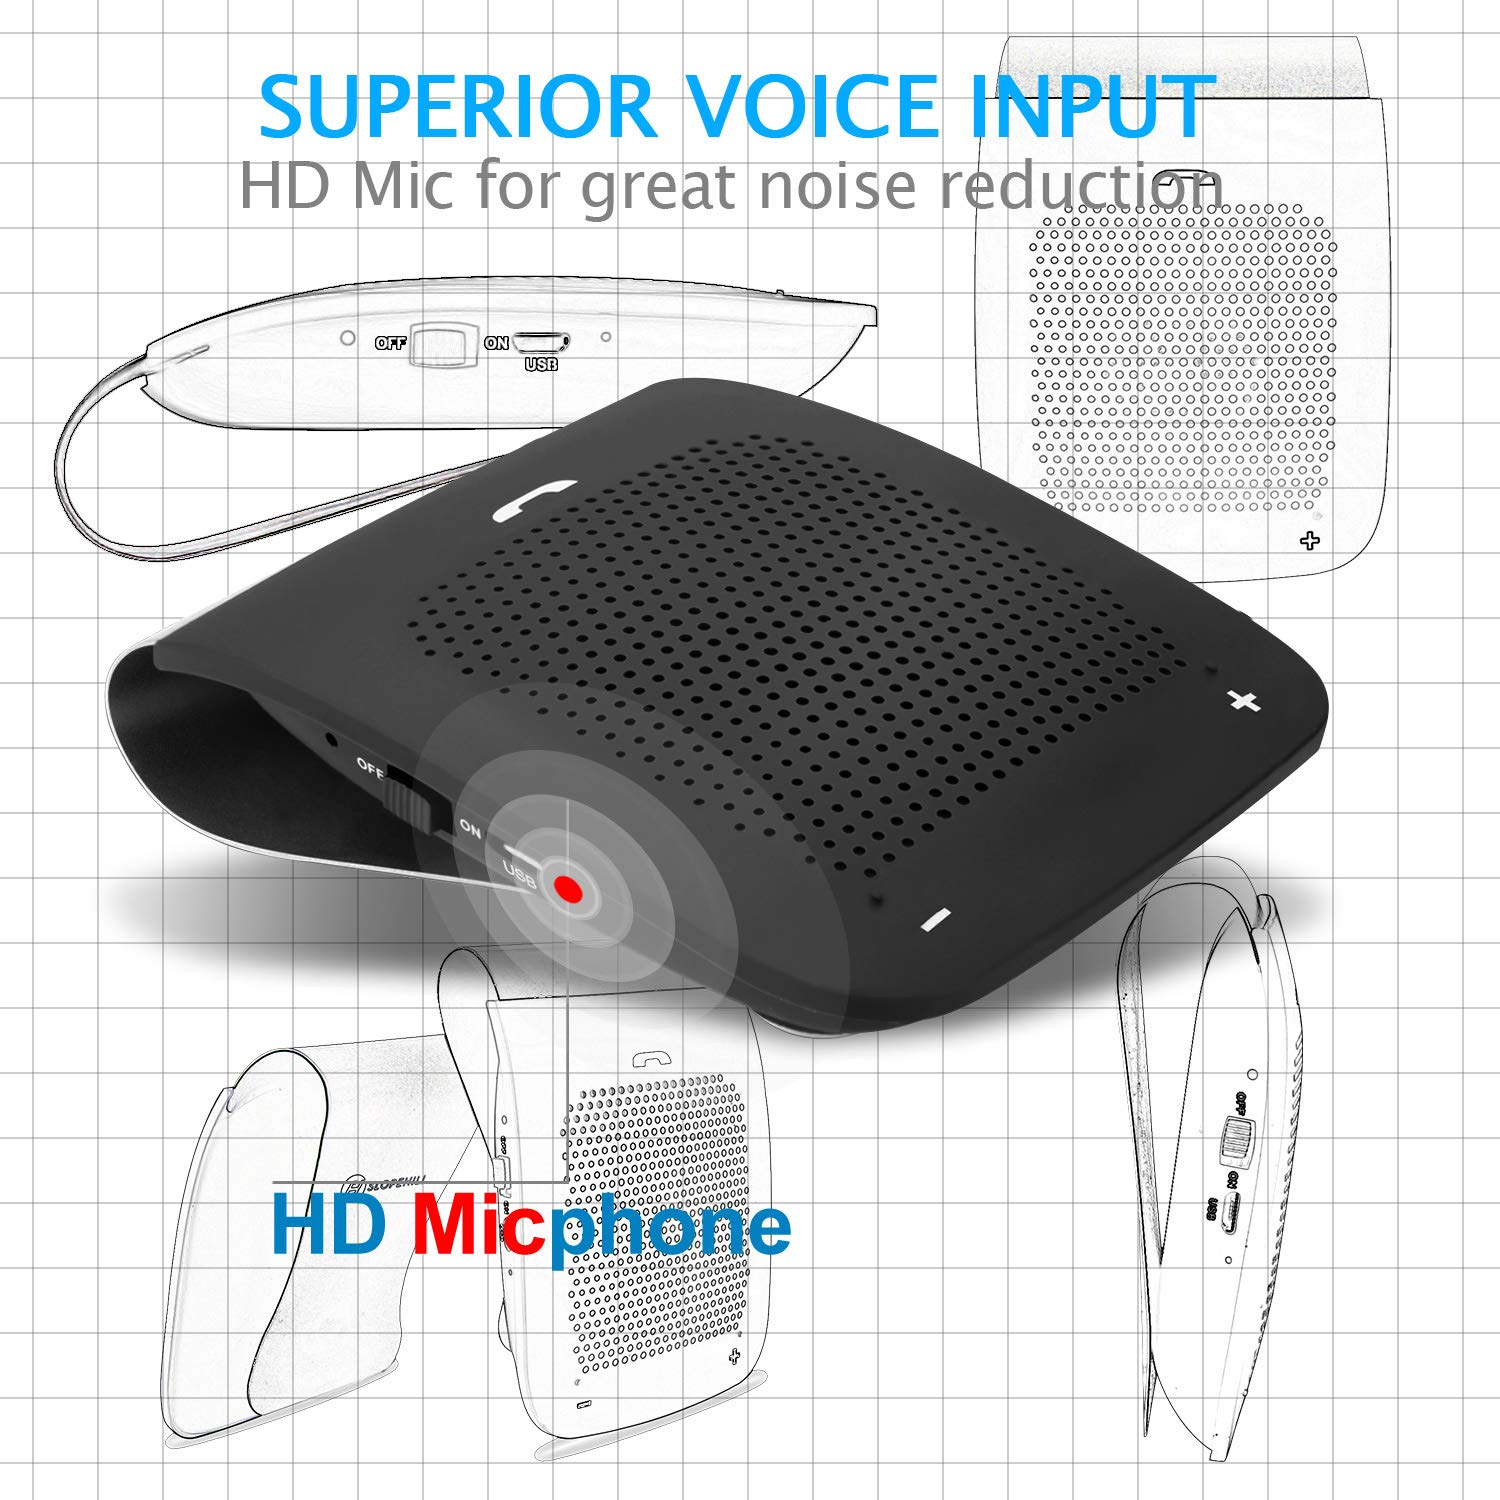 Wireless car Bluetooth Speaker, Slopehill in-car Bluetooth Speakerphone, Hands-Free Visor Speaker Automatic Cellphone Connection for Safe Drive Talking (Clip Design,2019 New Version) by slopehill (Image #4)